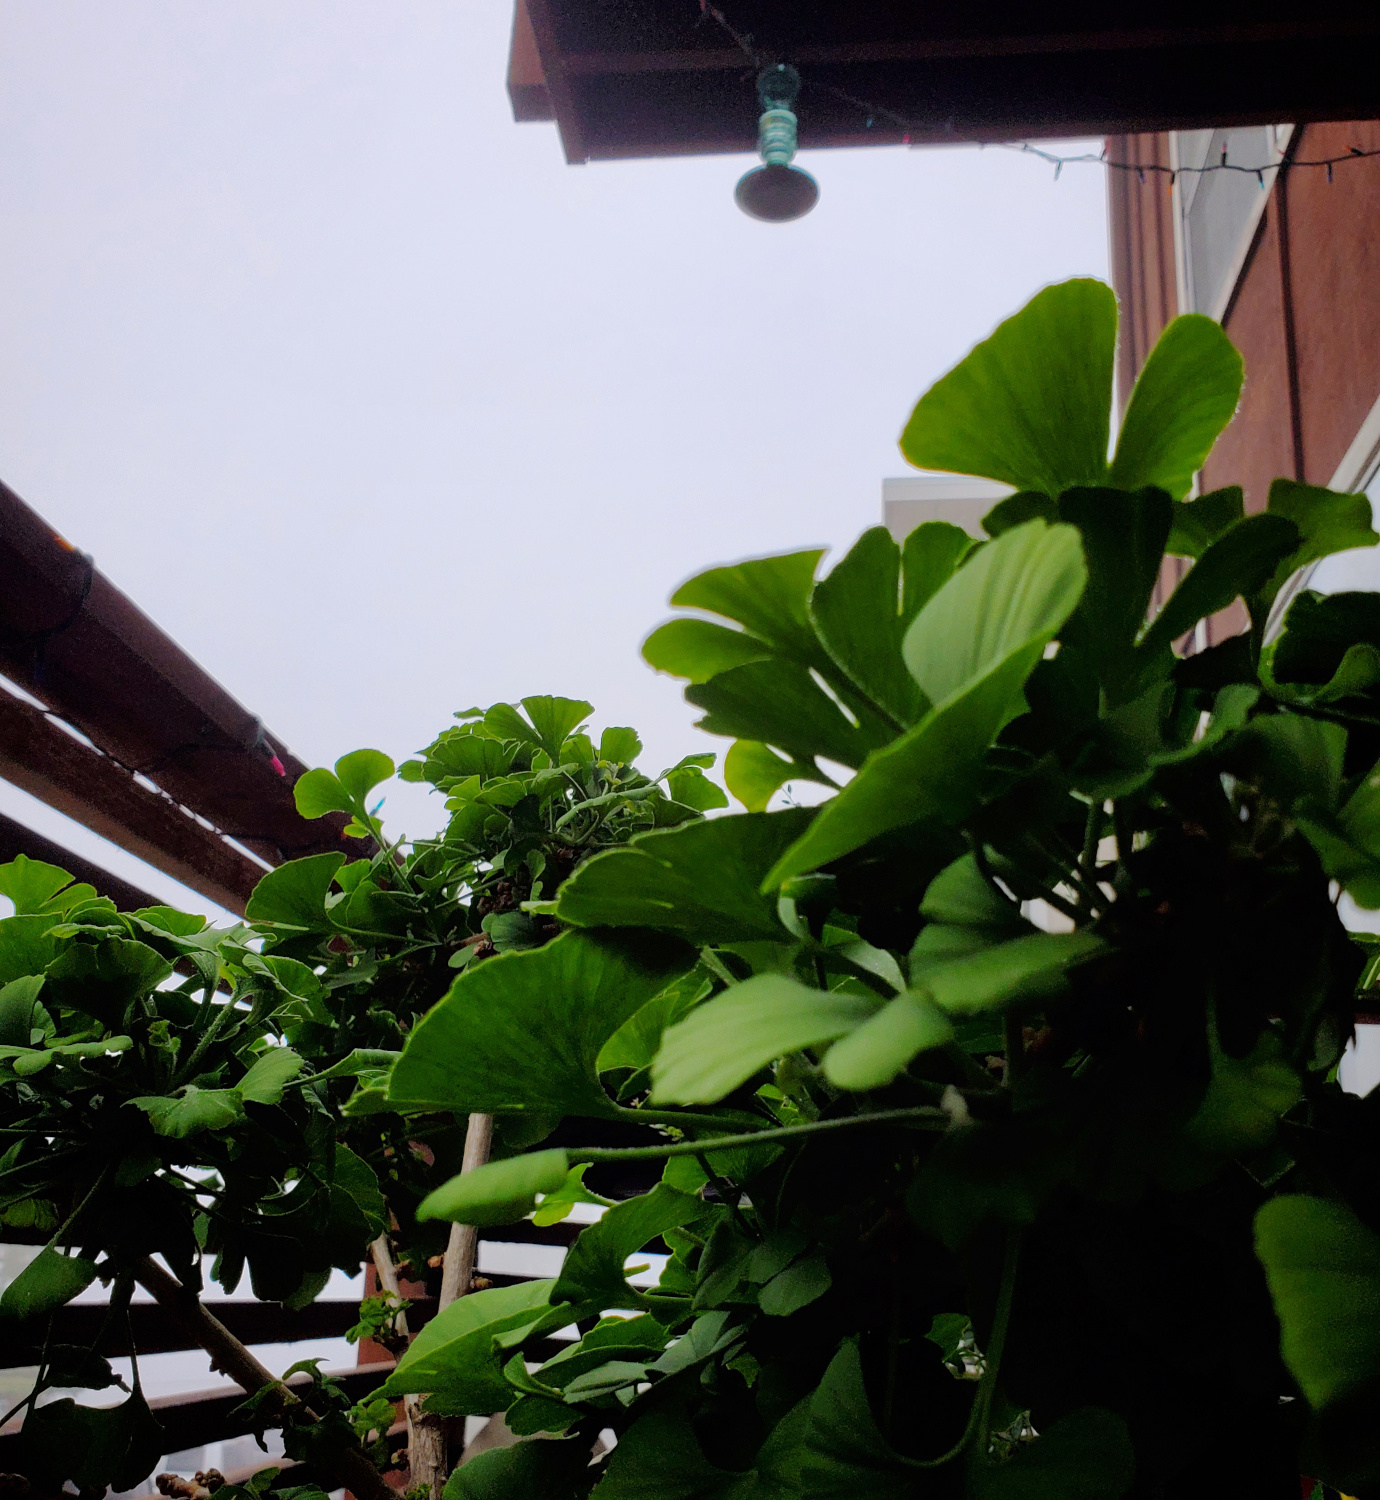 The Ginkgo is having a happy morning in the fog.